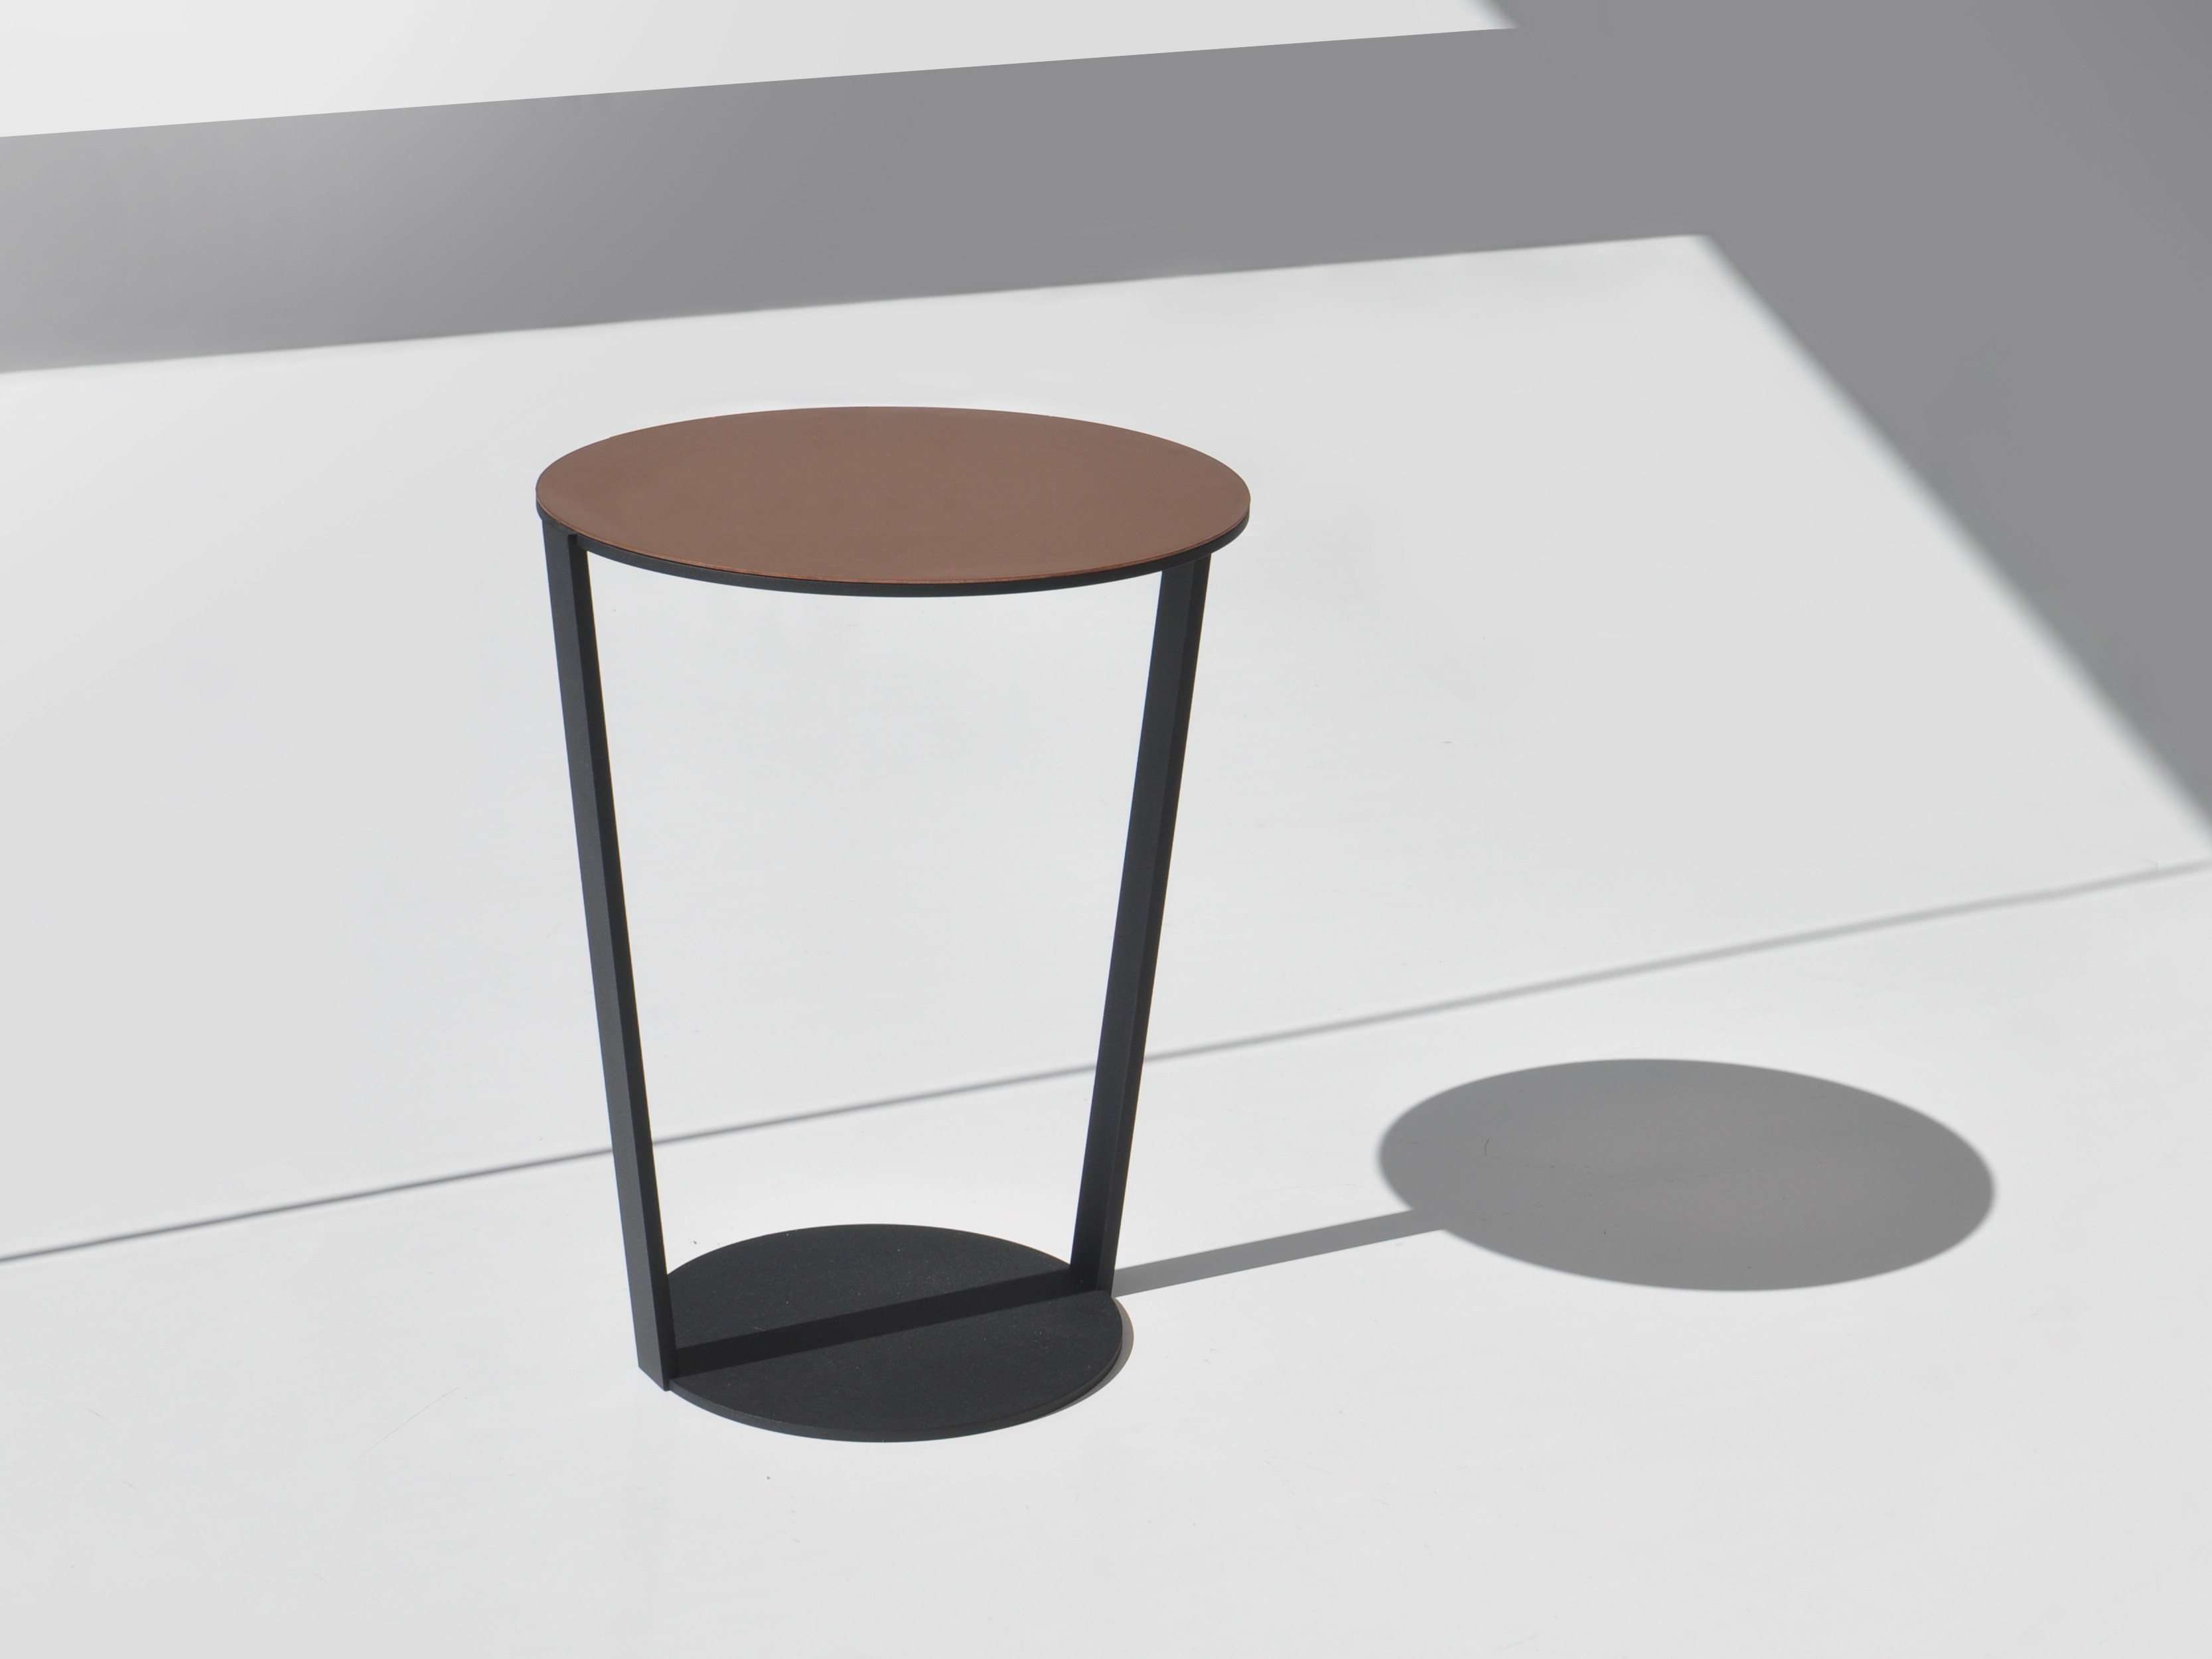 Table d 39 appoint ronde around by bensen - Table ronde d appoint ...